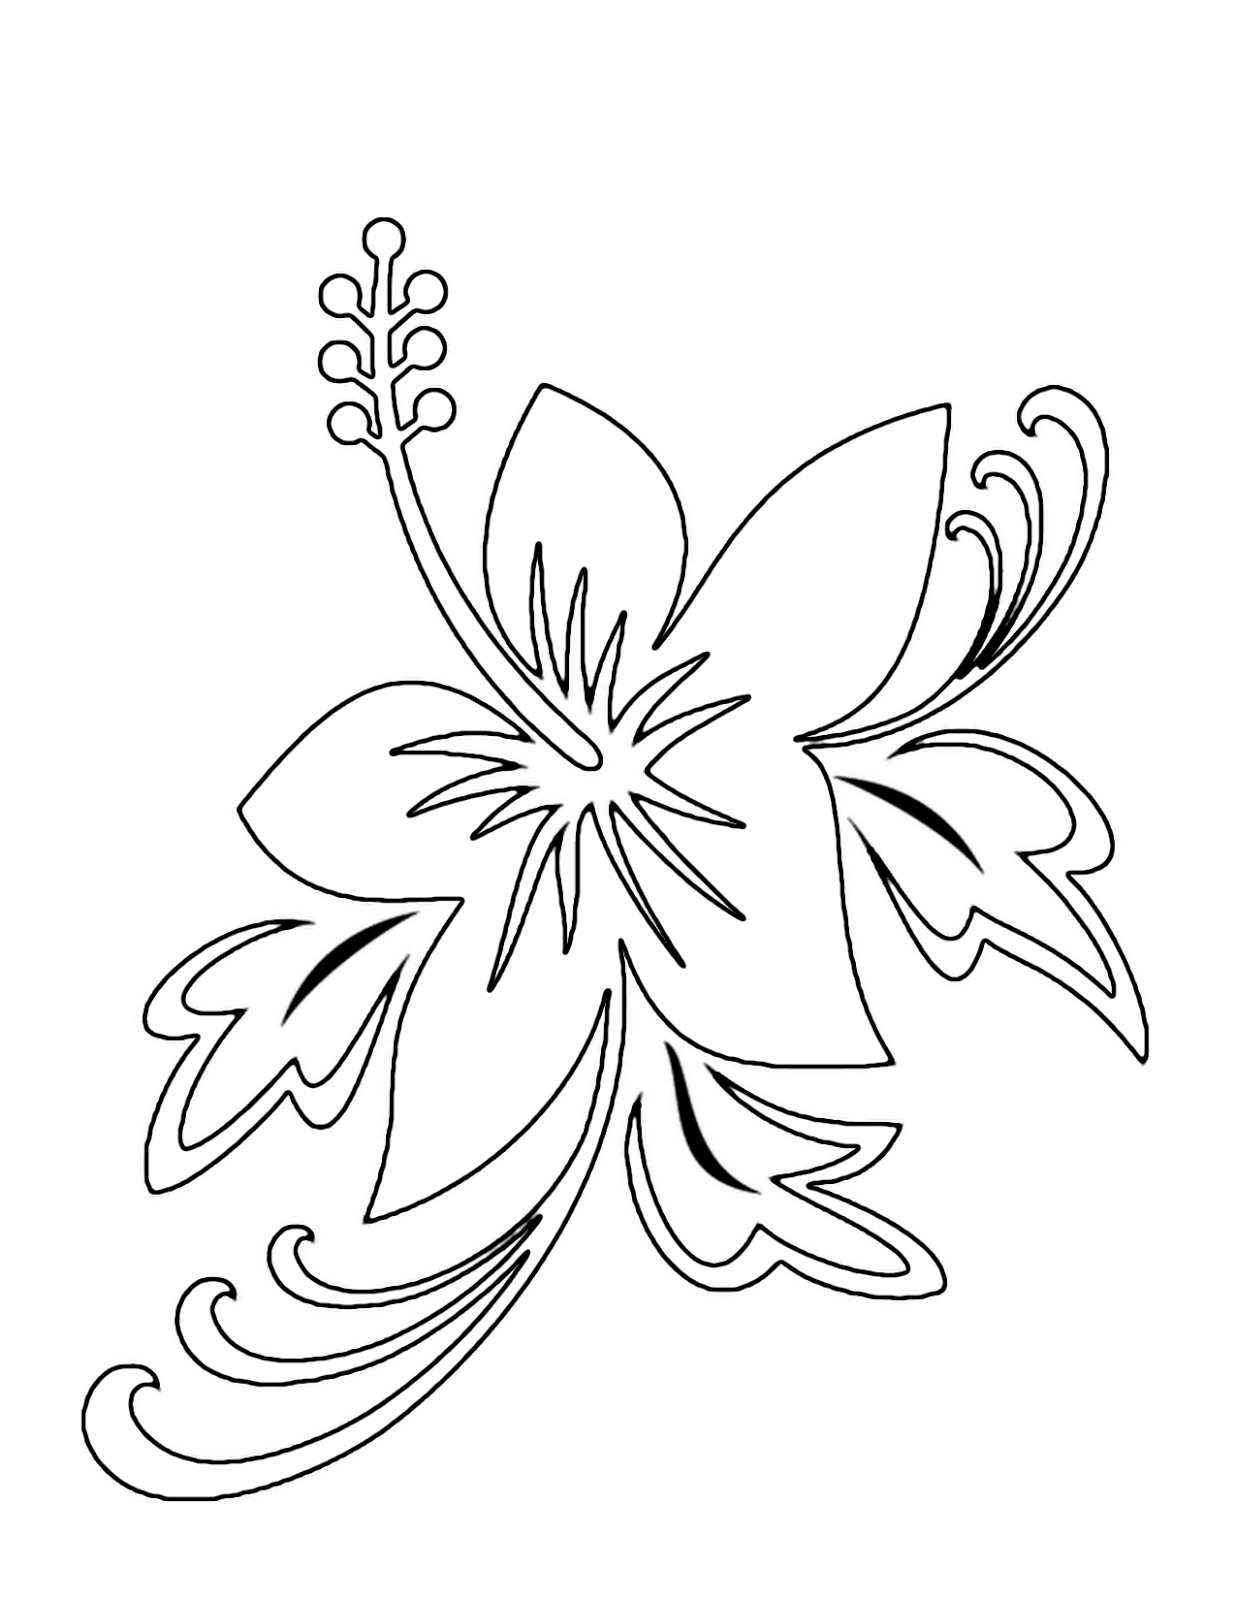 Flower Colouring Pages : Tropical flower coloring pages page